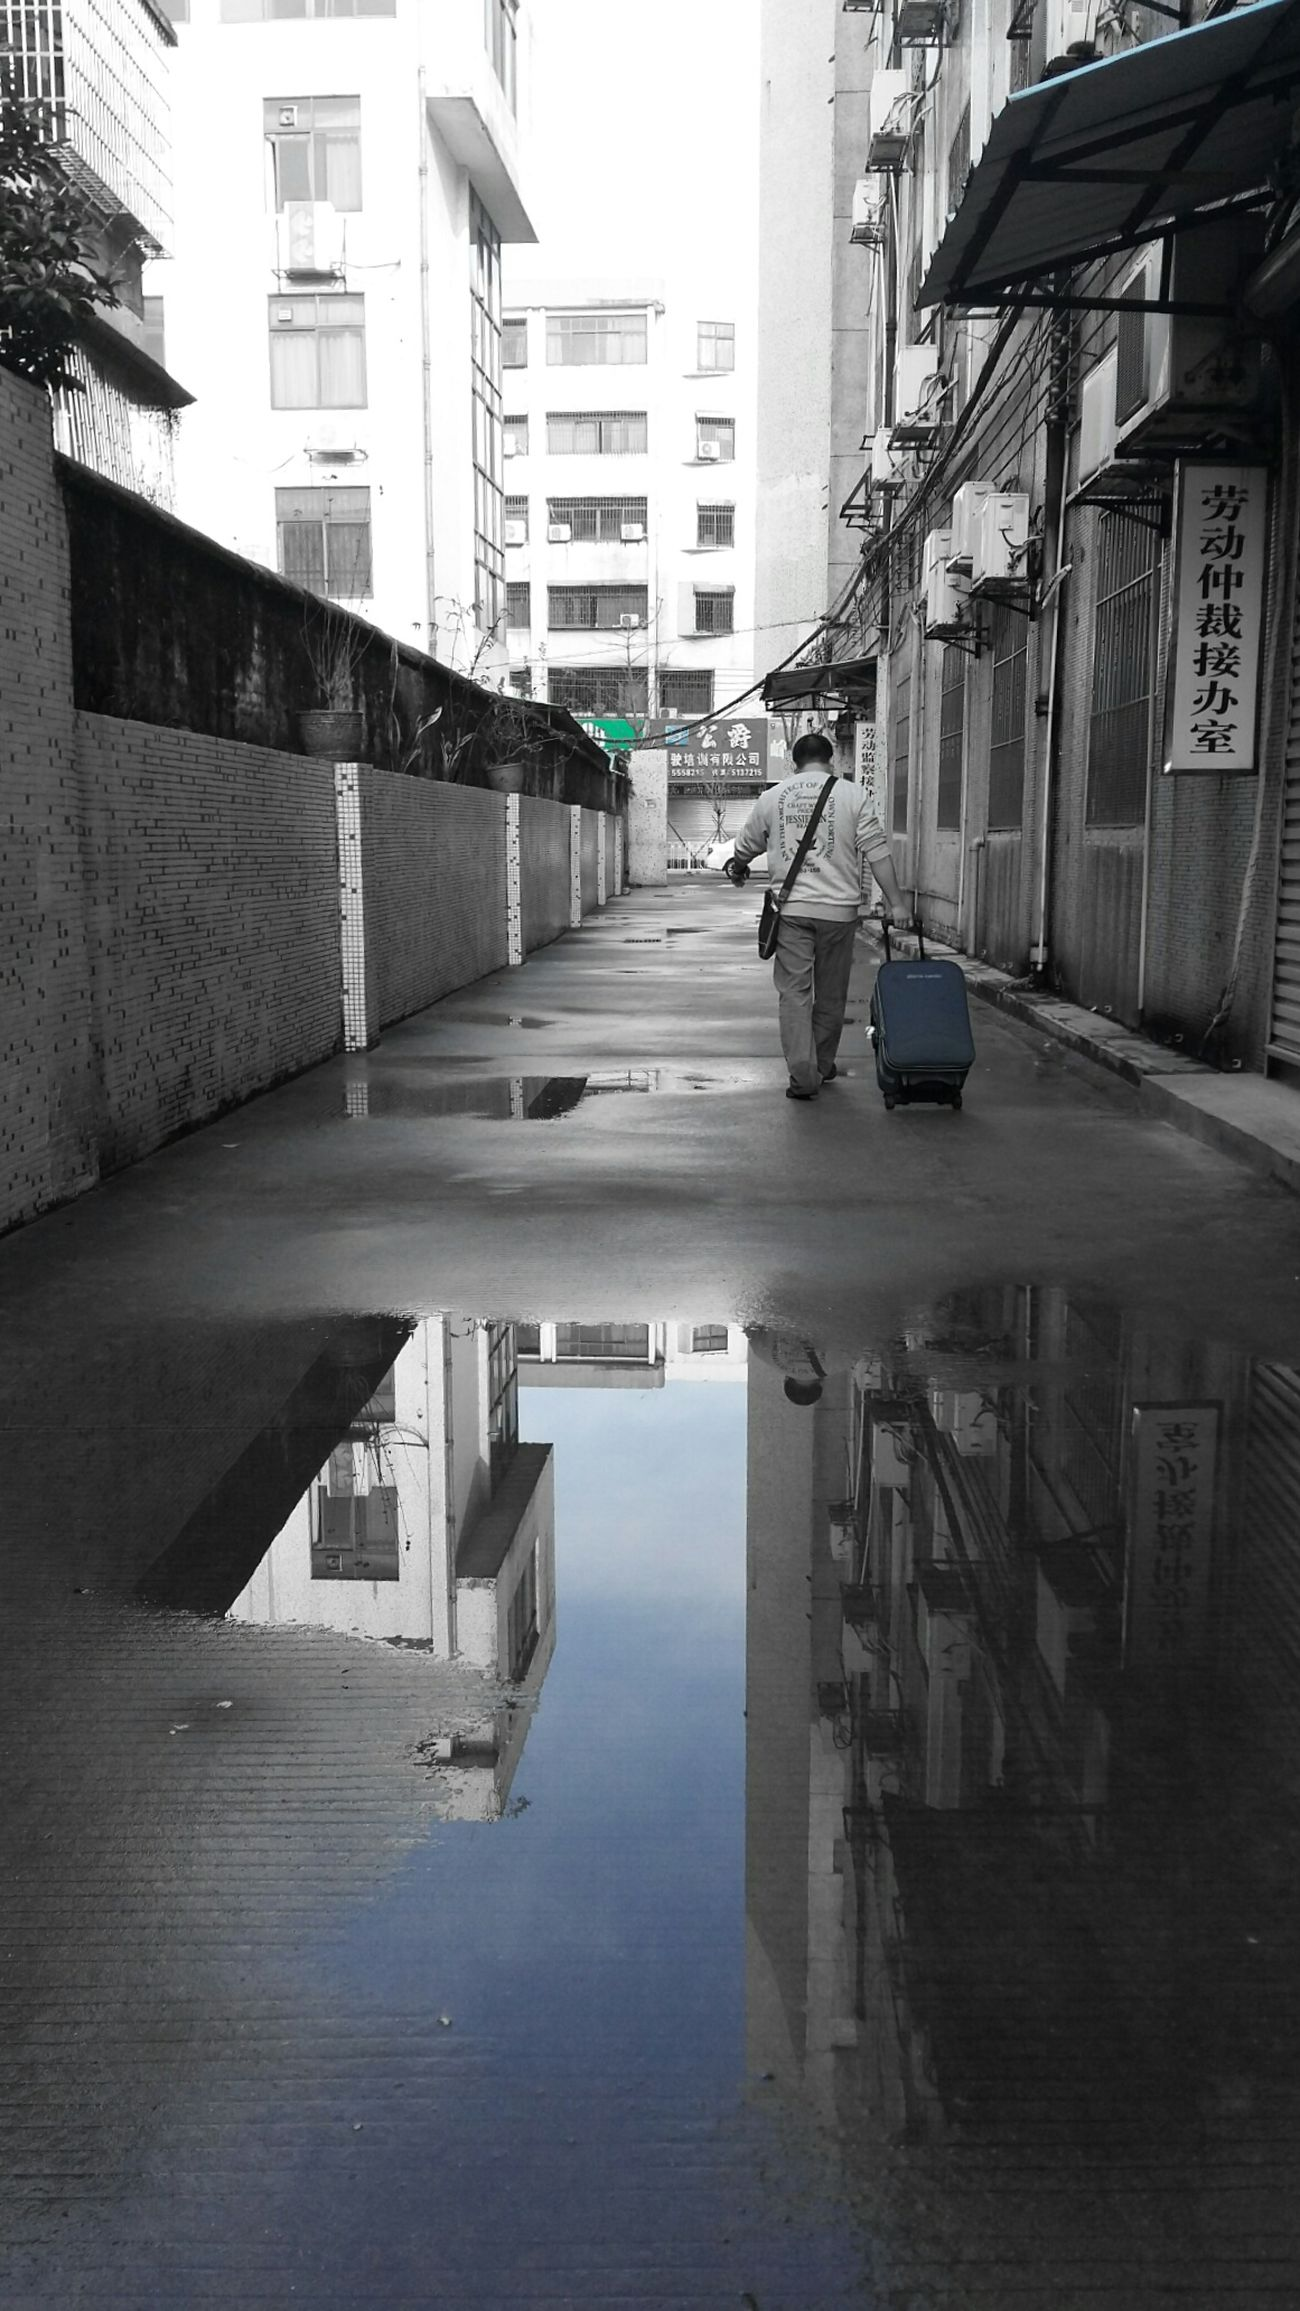 Architecture Built Structure Building Exterior City Reflection Water City Life Sky Day One Person You Can Turn Around Your Phone Black & White Blue Sky Rainny Day - Zhuhai China Welcome To Black